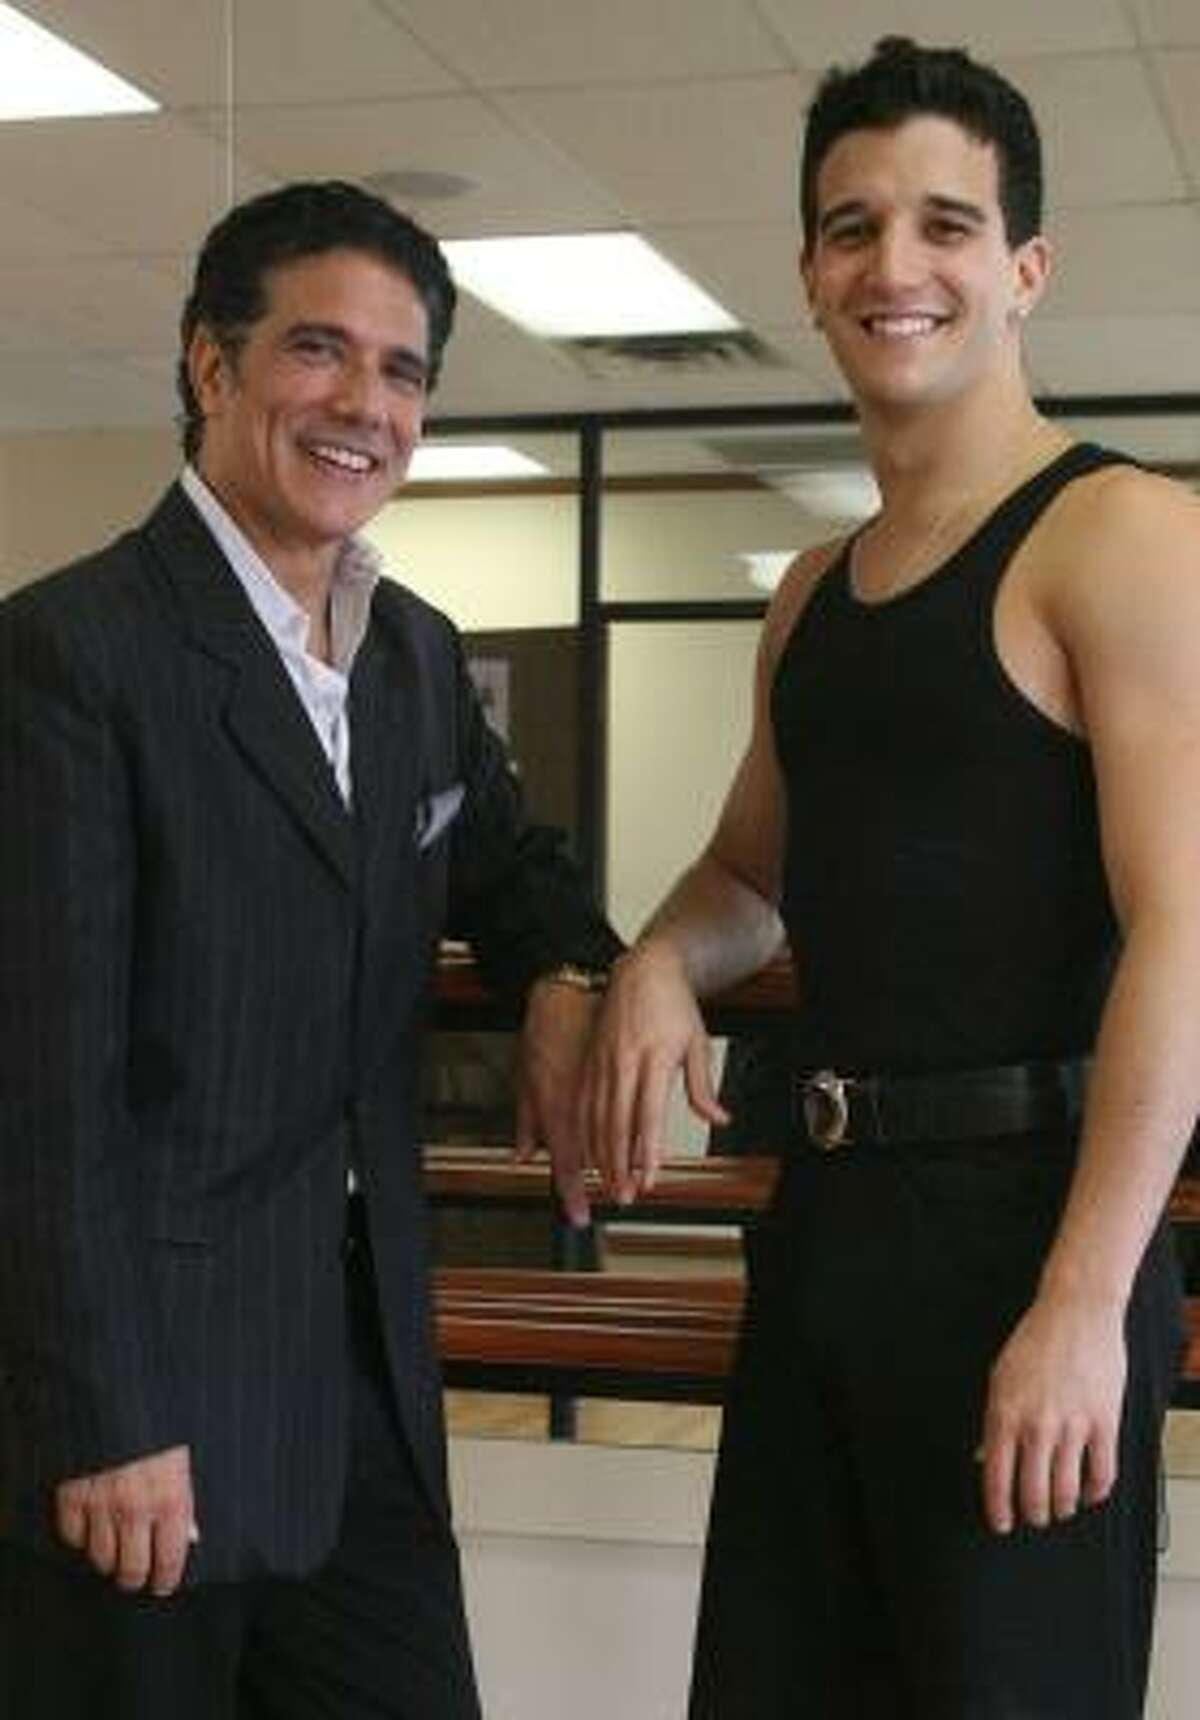 Corky Ballas, left, served as dance instructor for son Mark and two other competitors on Dancing With the Stars — siblings Derek and Julianne Hough.